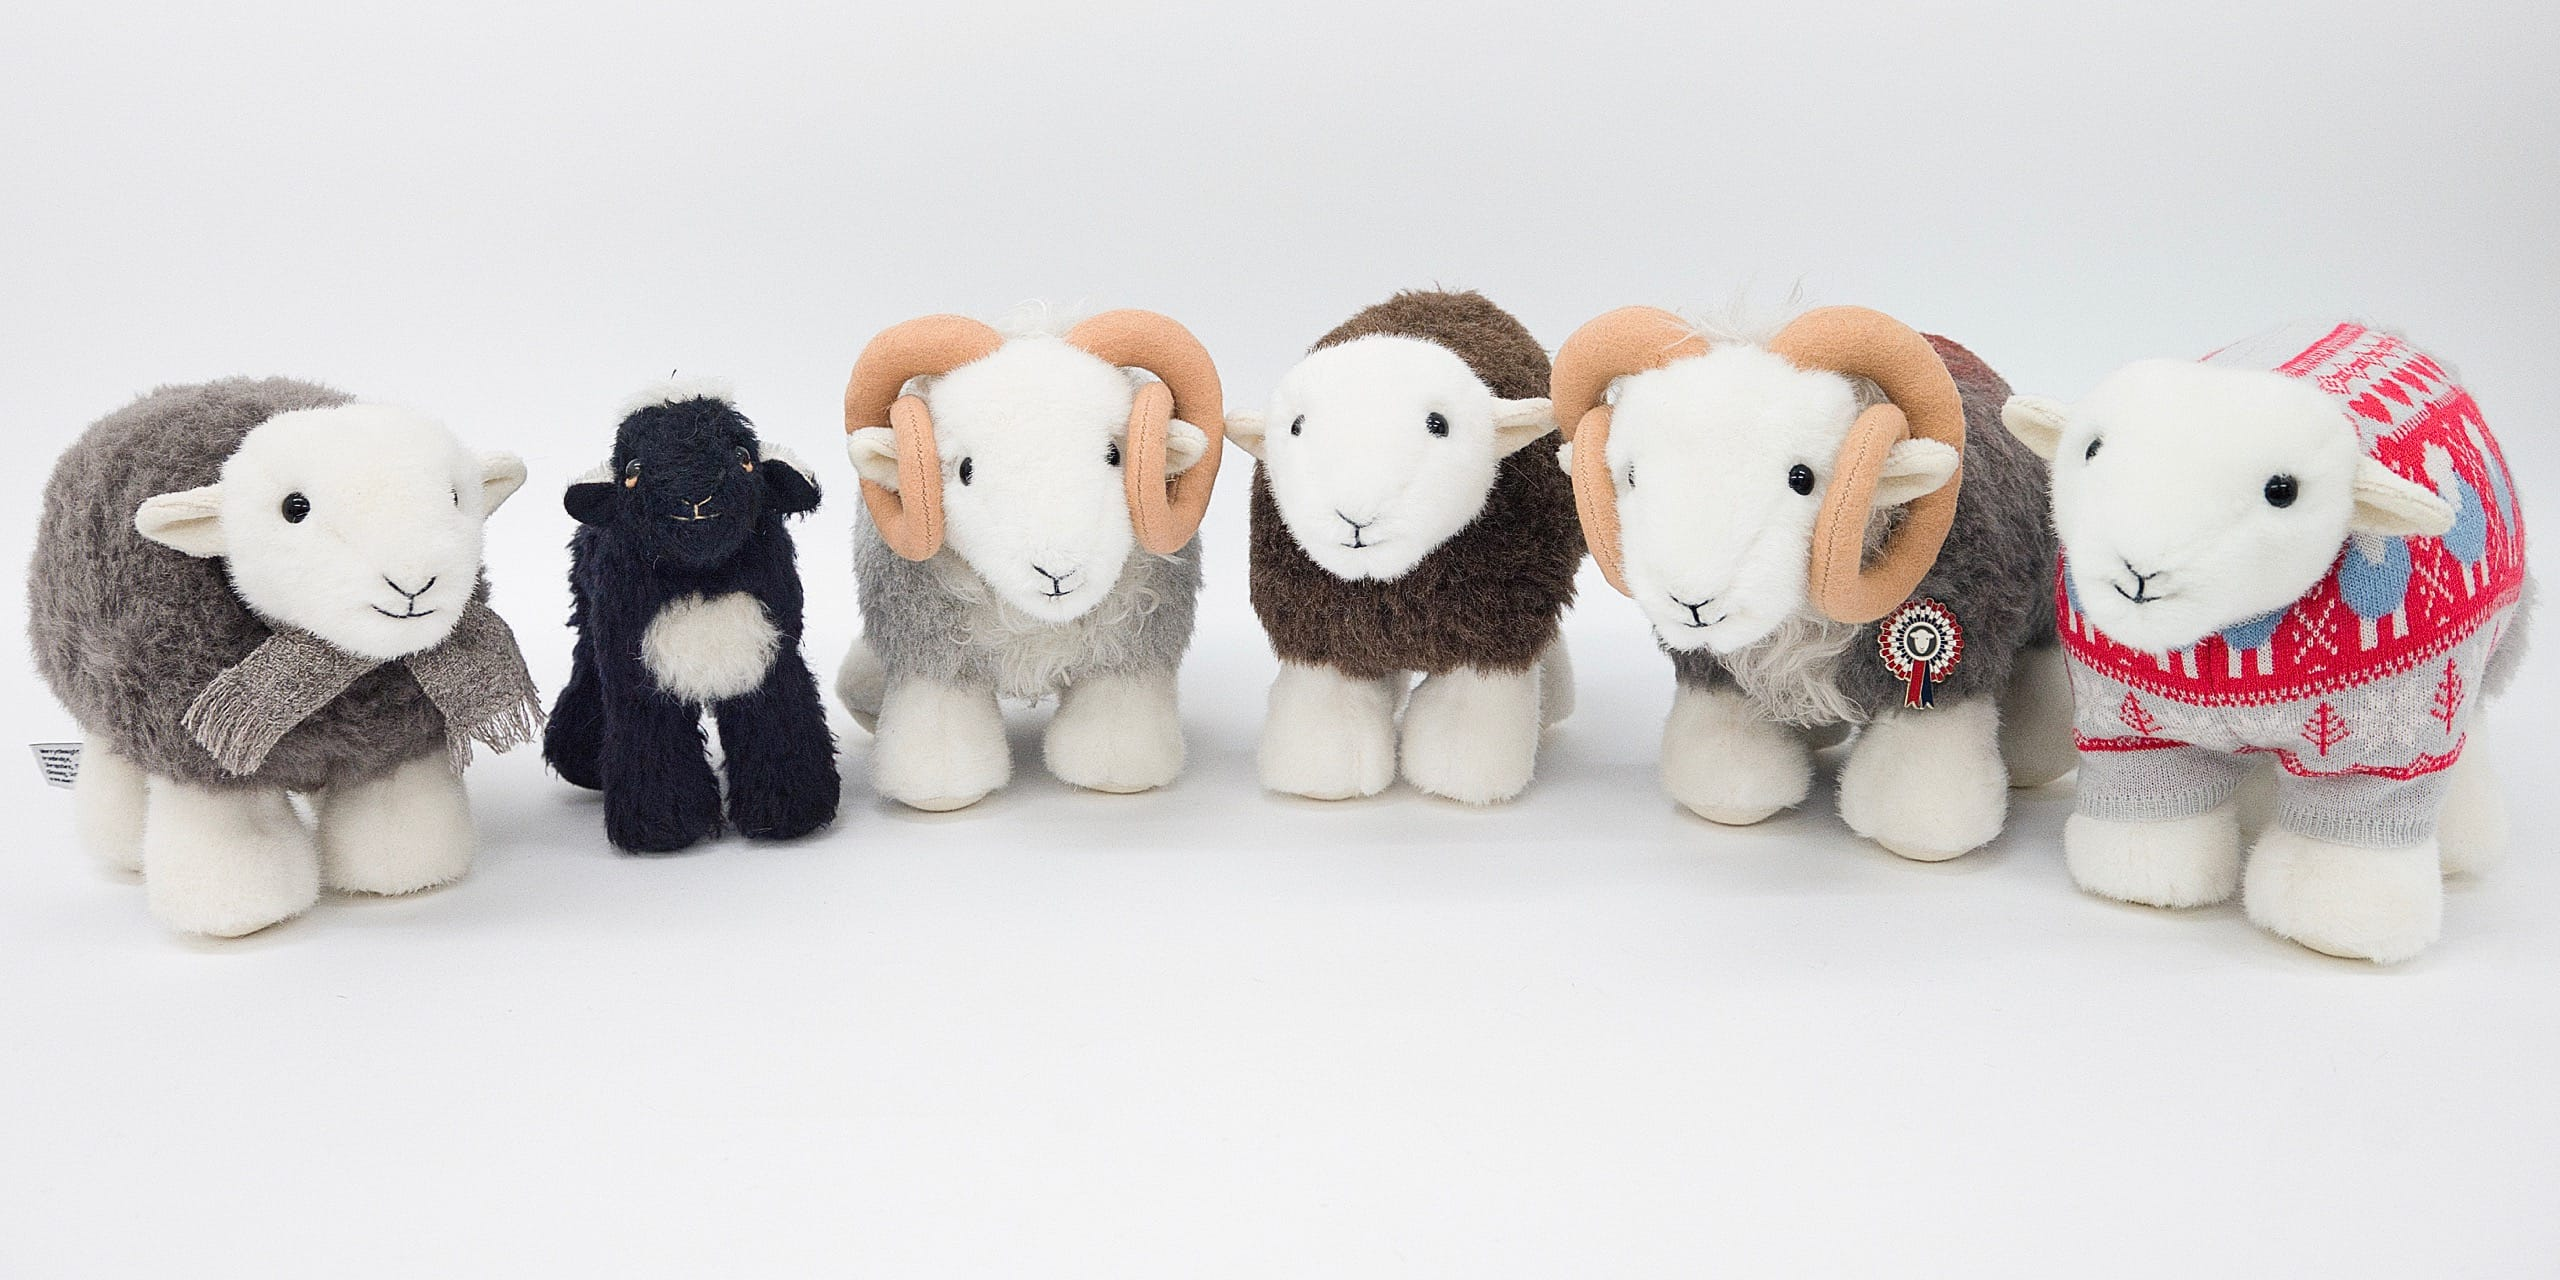 Merrythought Toys & Herdy: The Story